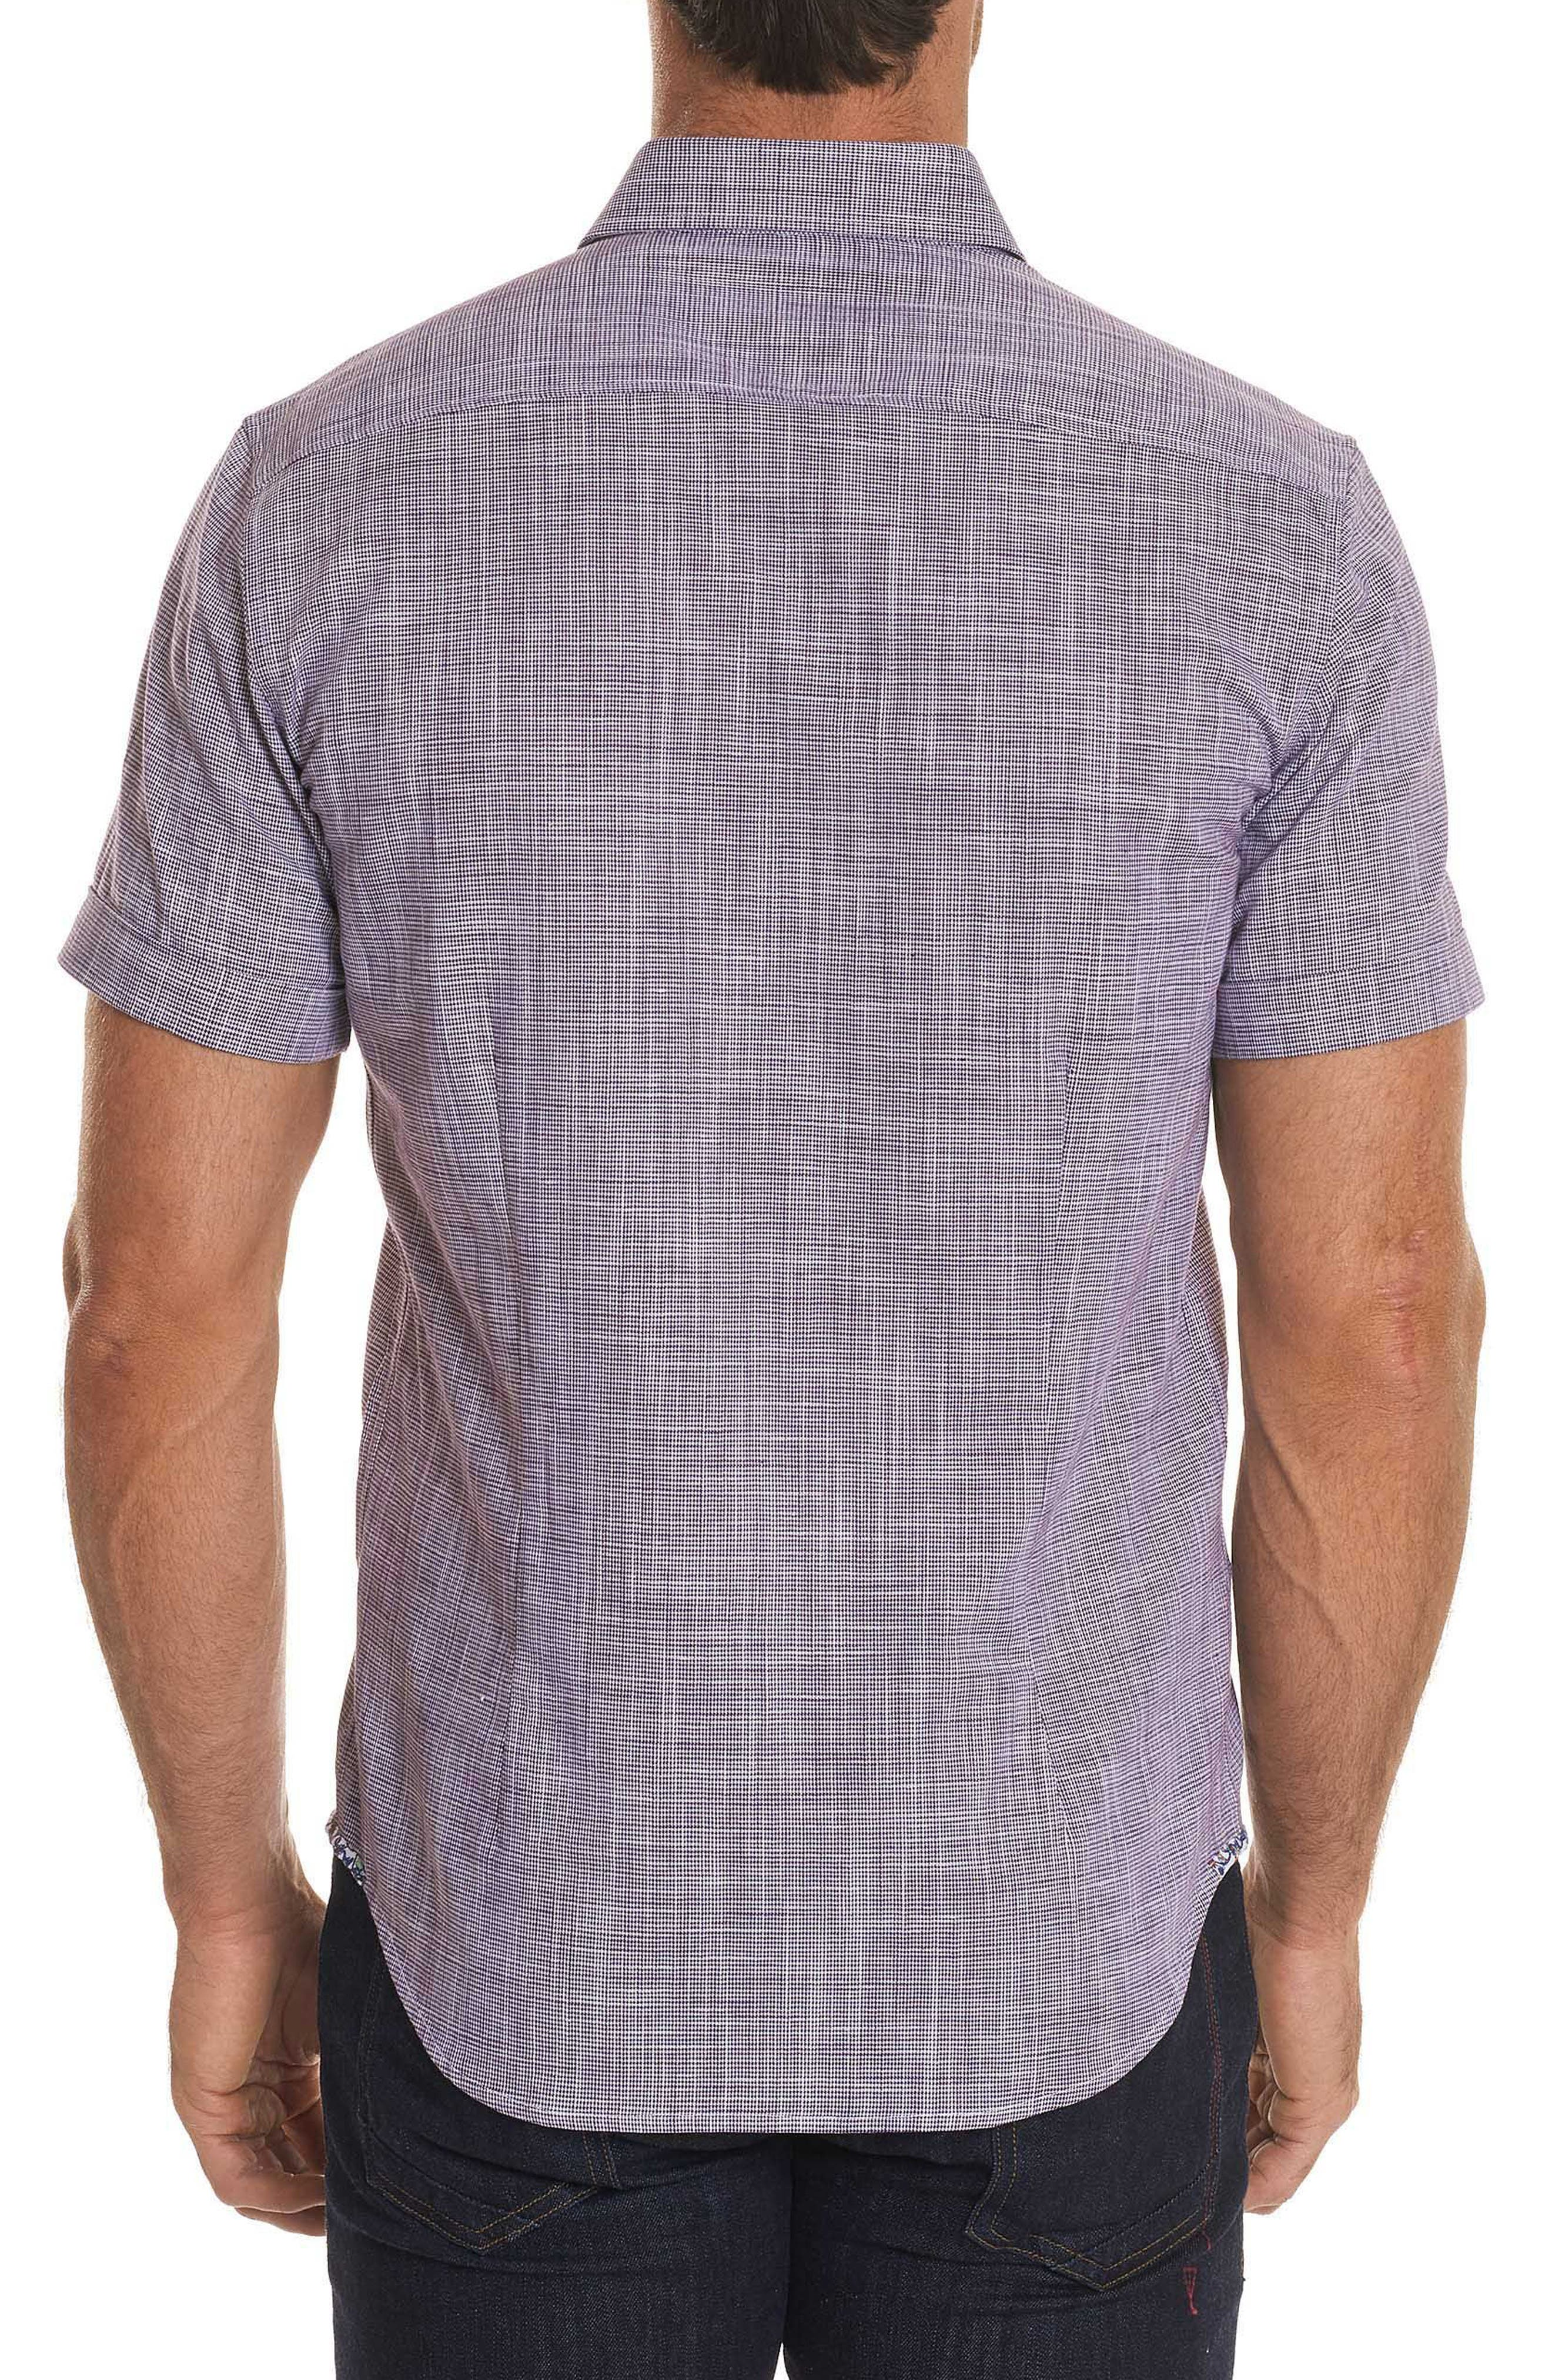 Isia Tailored Fit Sport Shirt,                             Alternate thumbnail 2, color,                             PURPLE